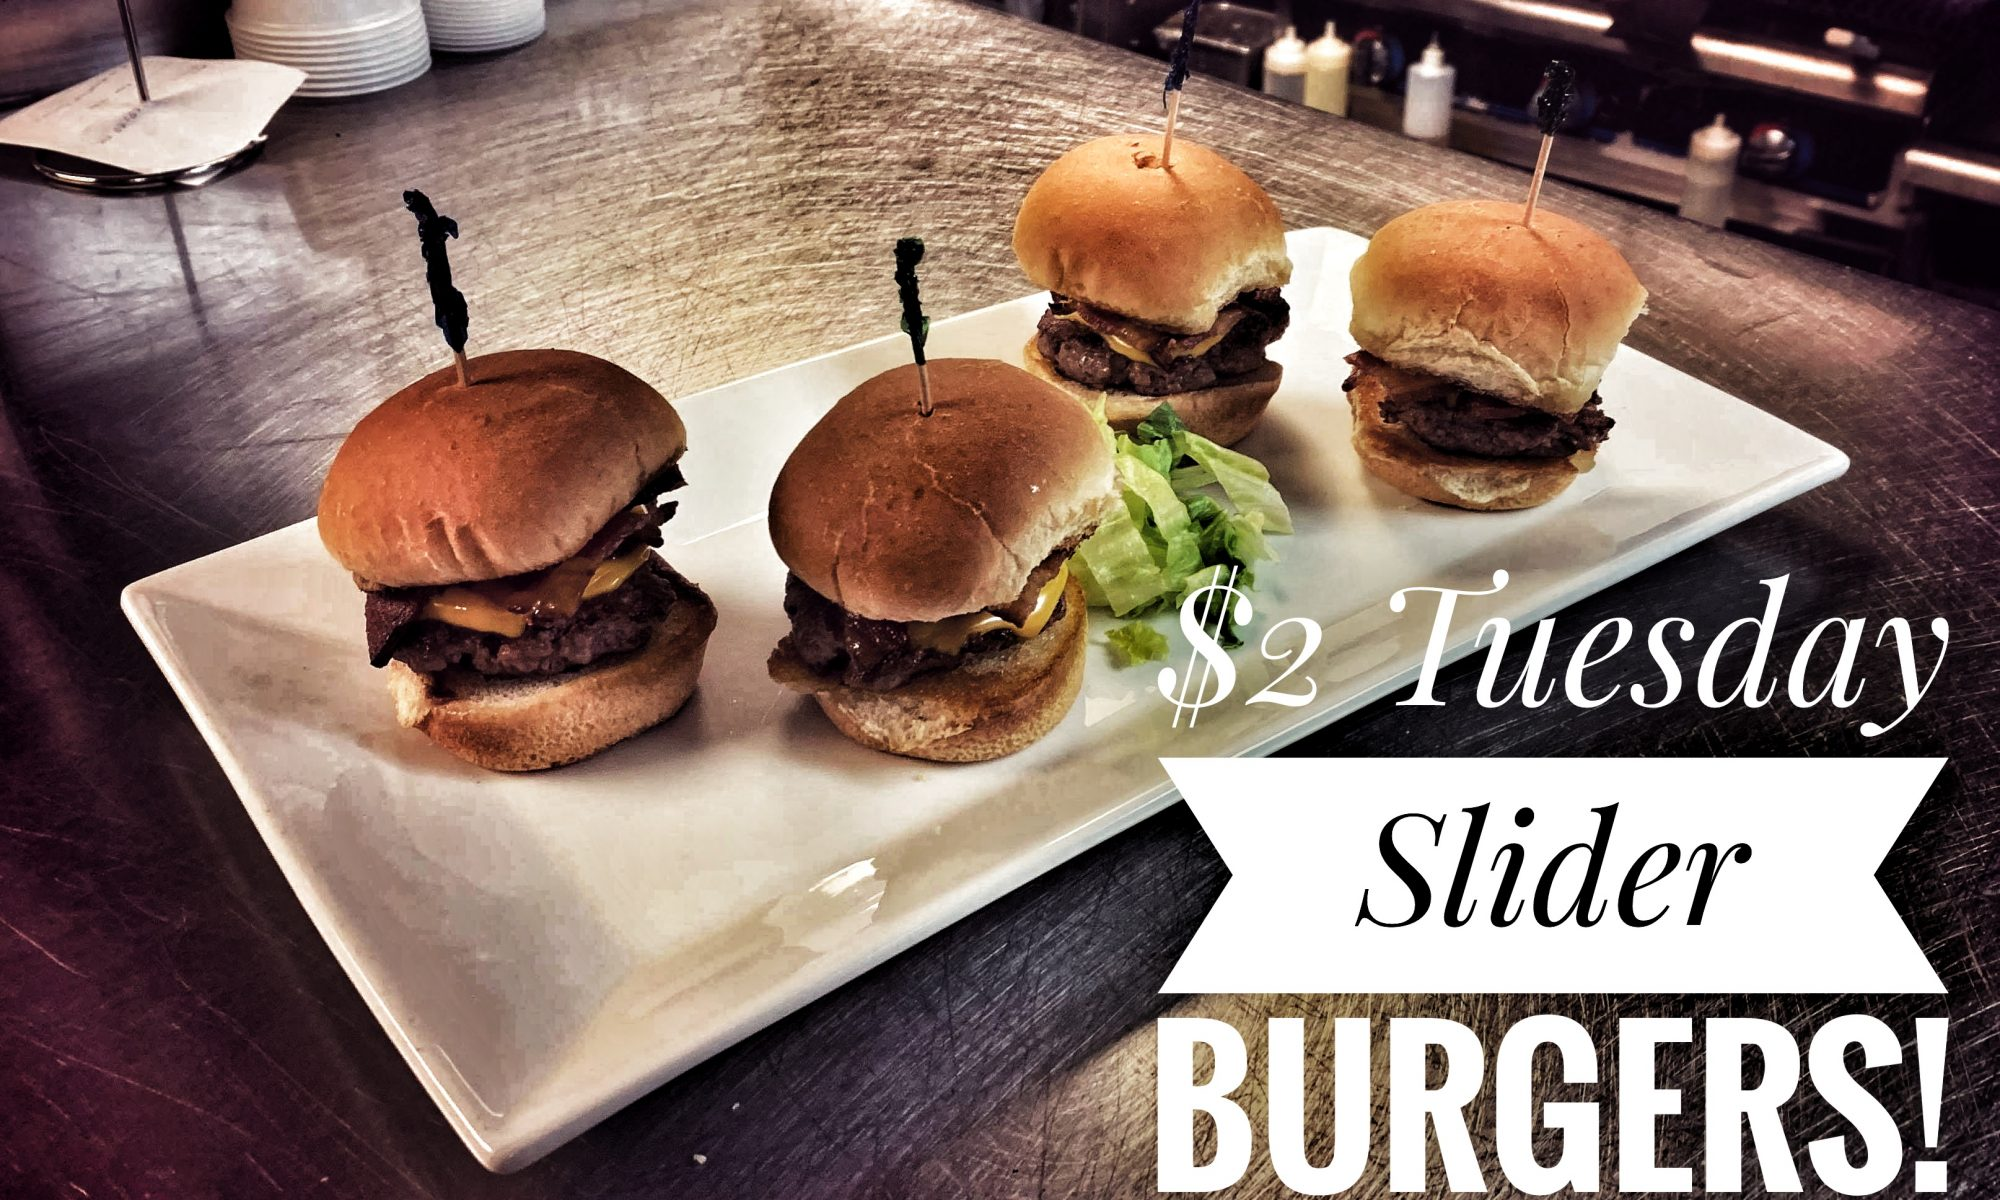 $2 Tuesday Slider Burgers